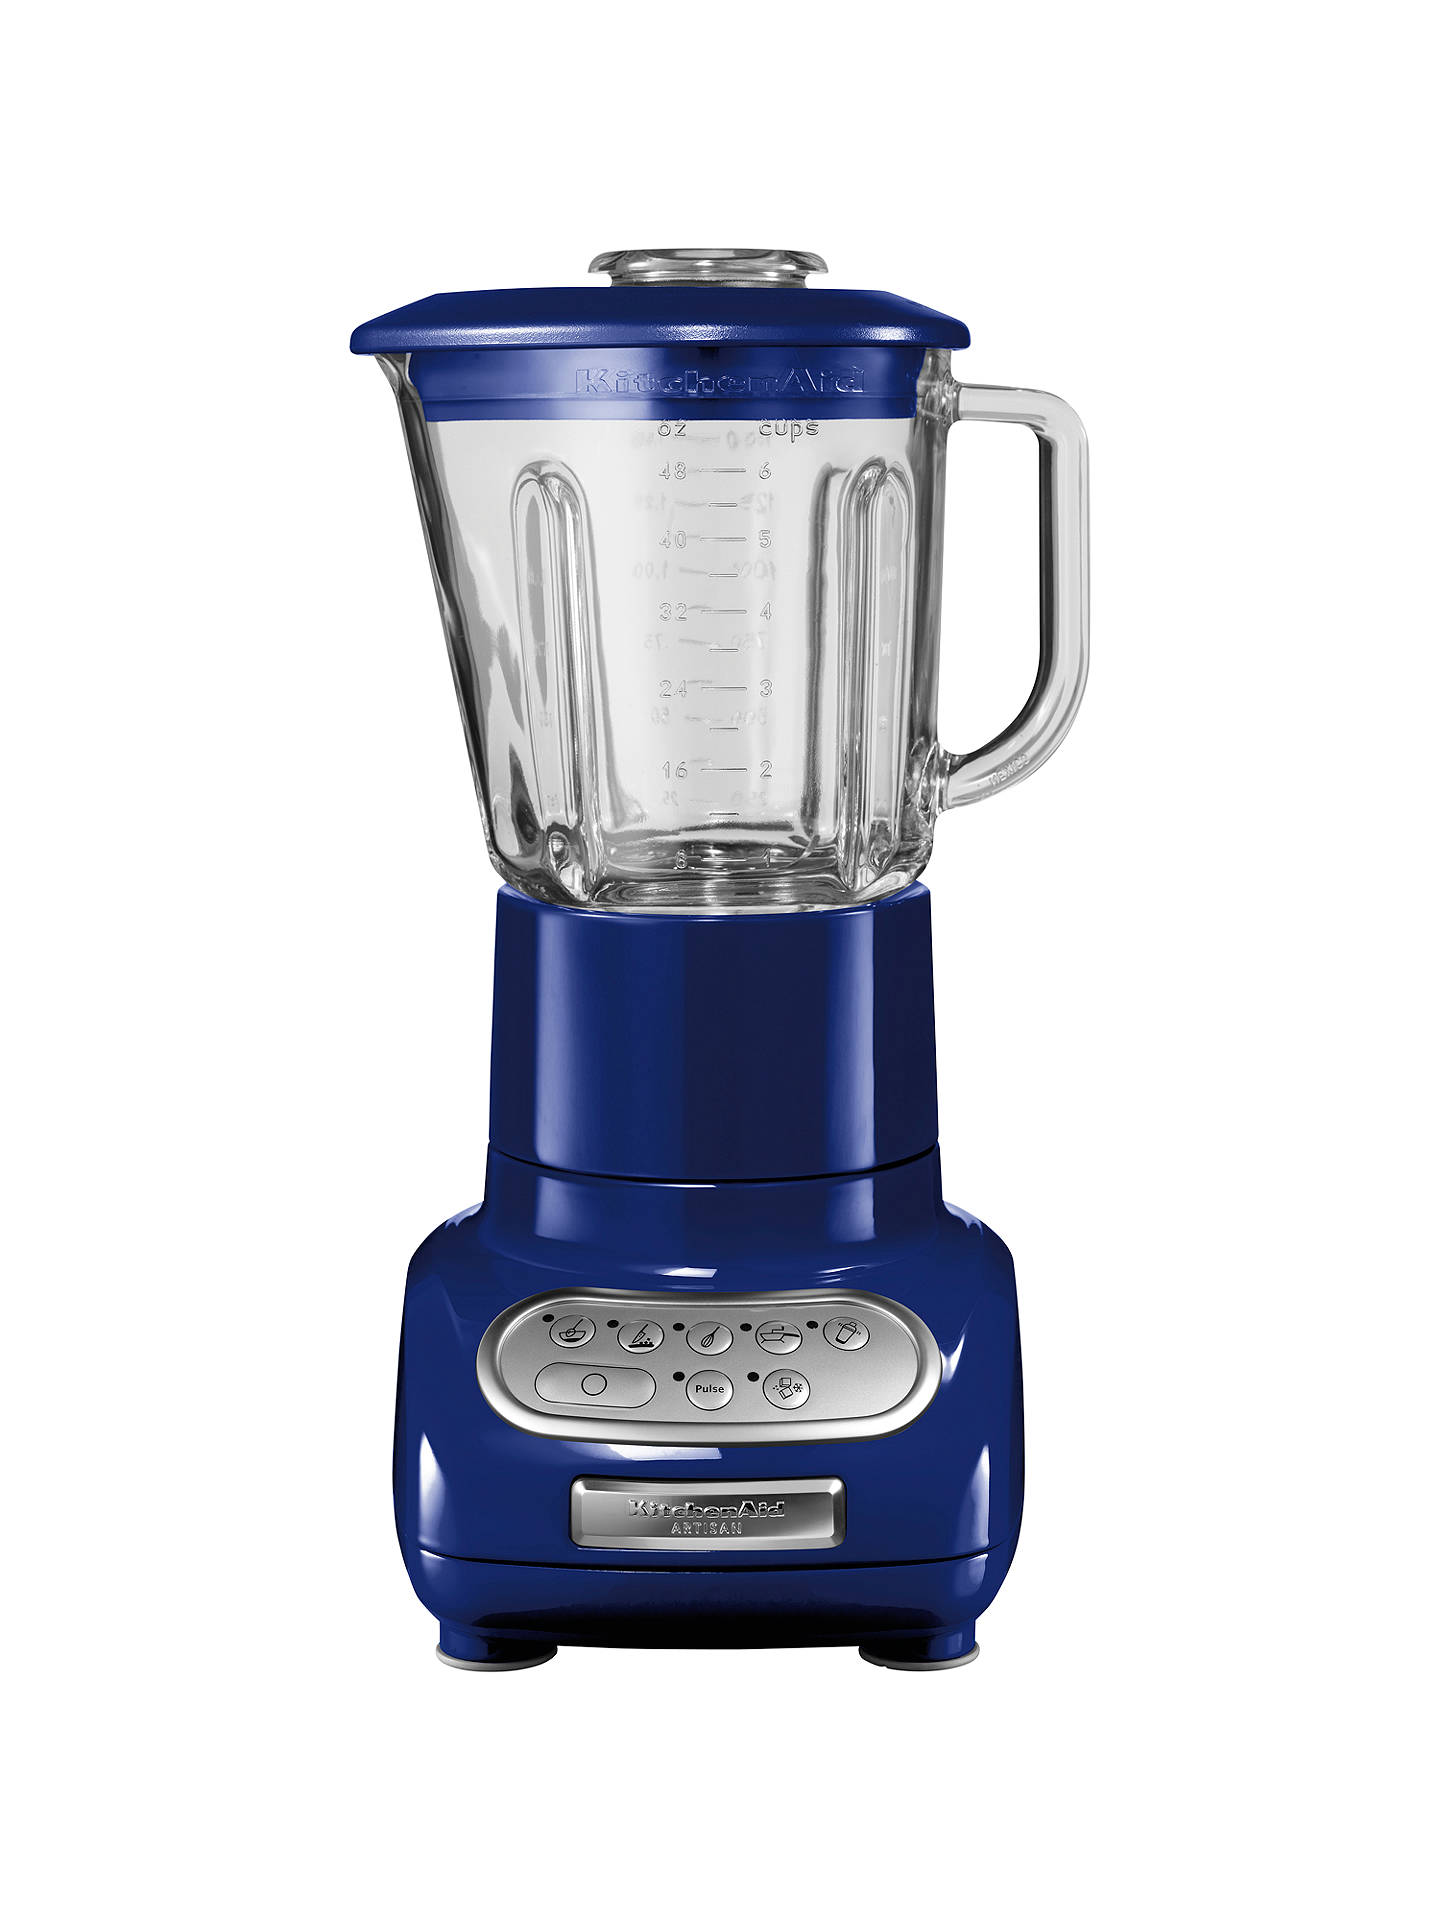 Kitchenaid Artisan Blender Cobalt Blue At John Lewis